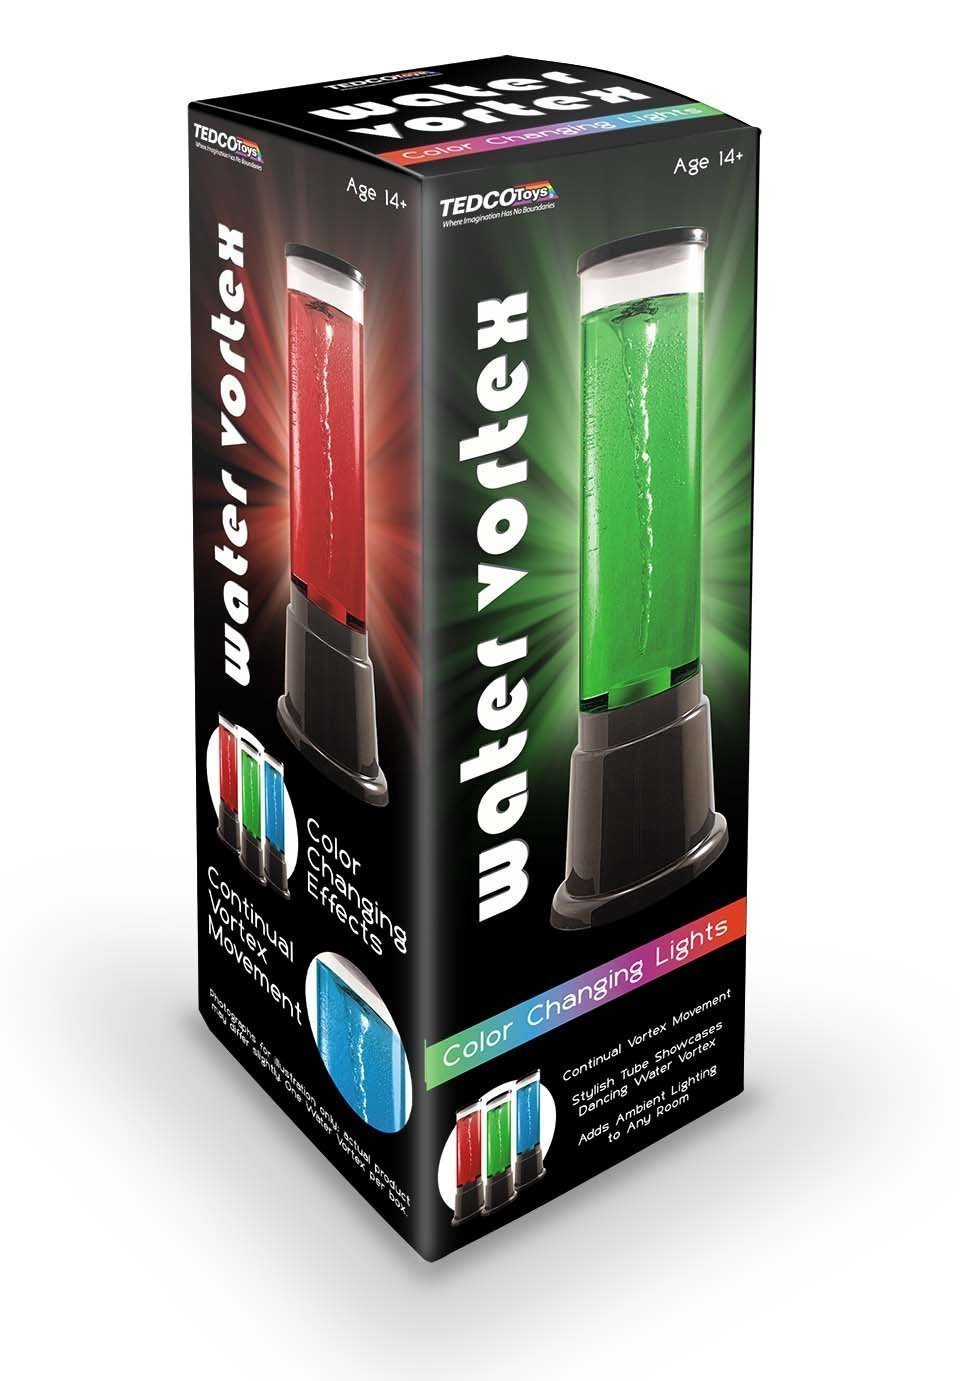 X DC TED 72693 WATER VORTEX COLOR CHANGING LIGHTS